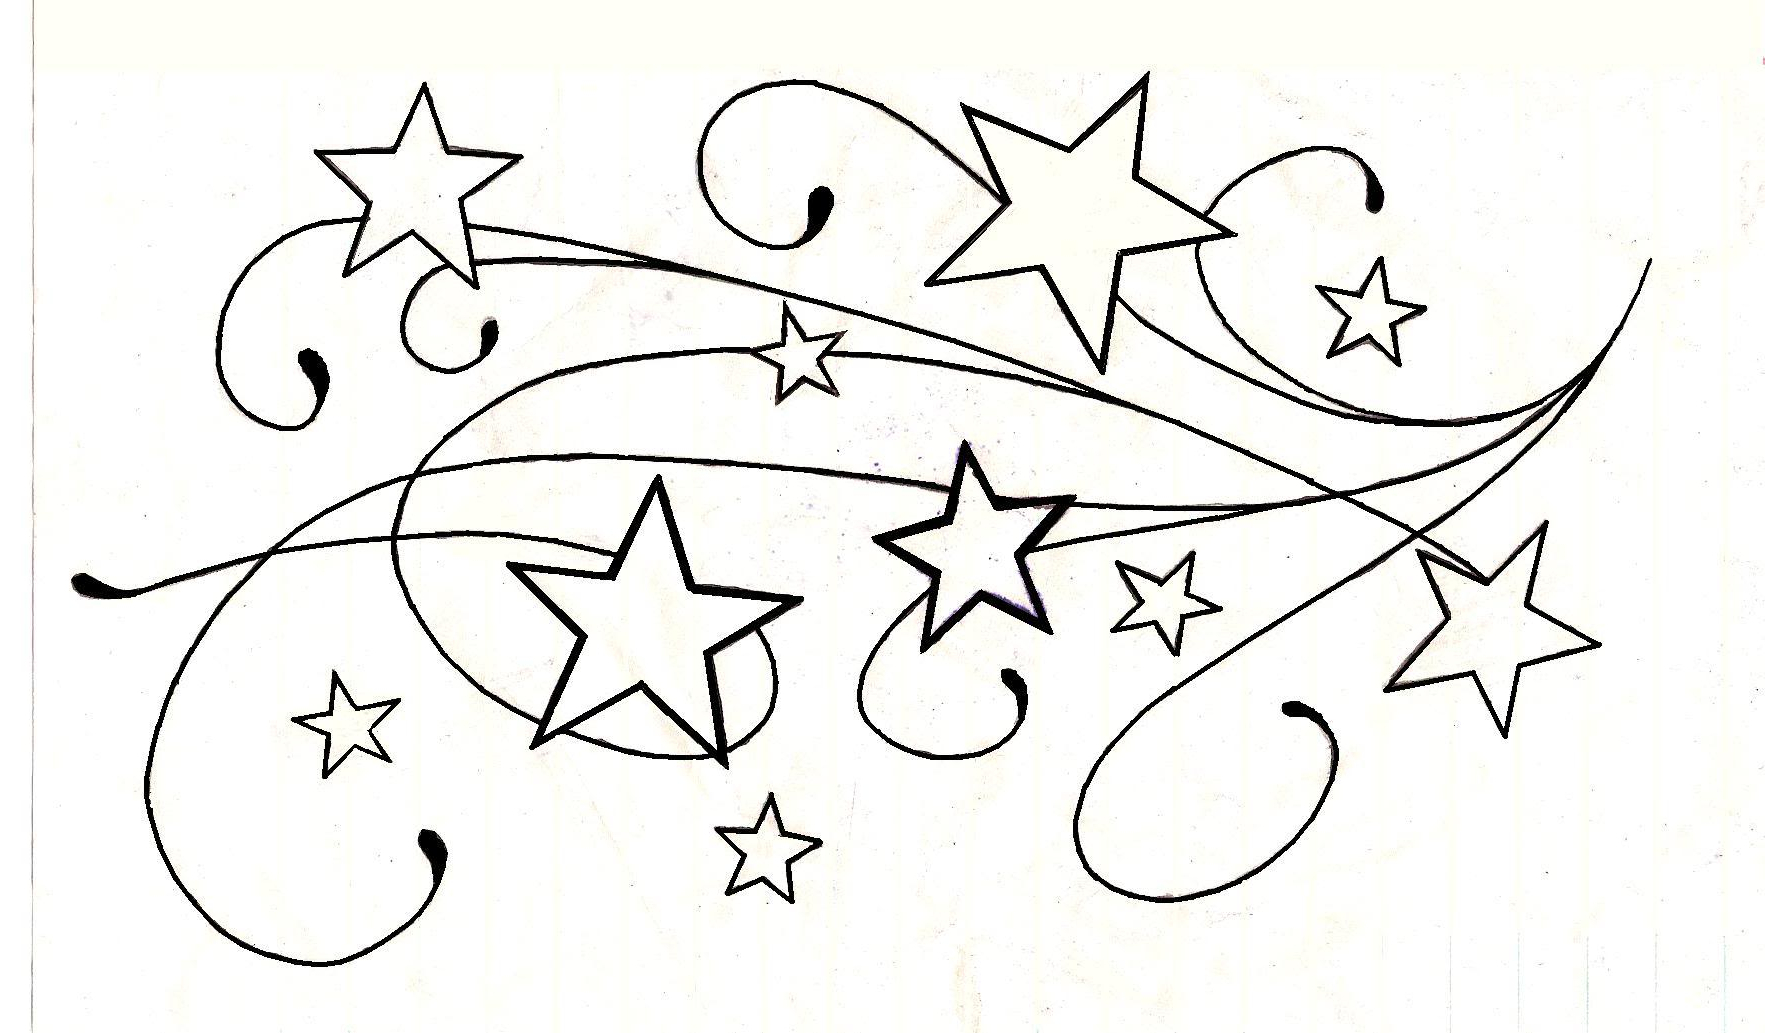 Shooting Star Tattoo Drawing At GetDrawings.com